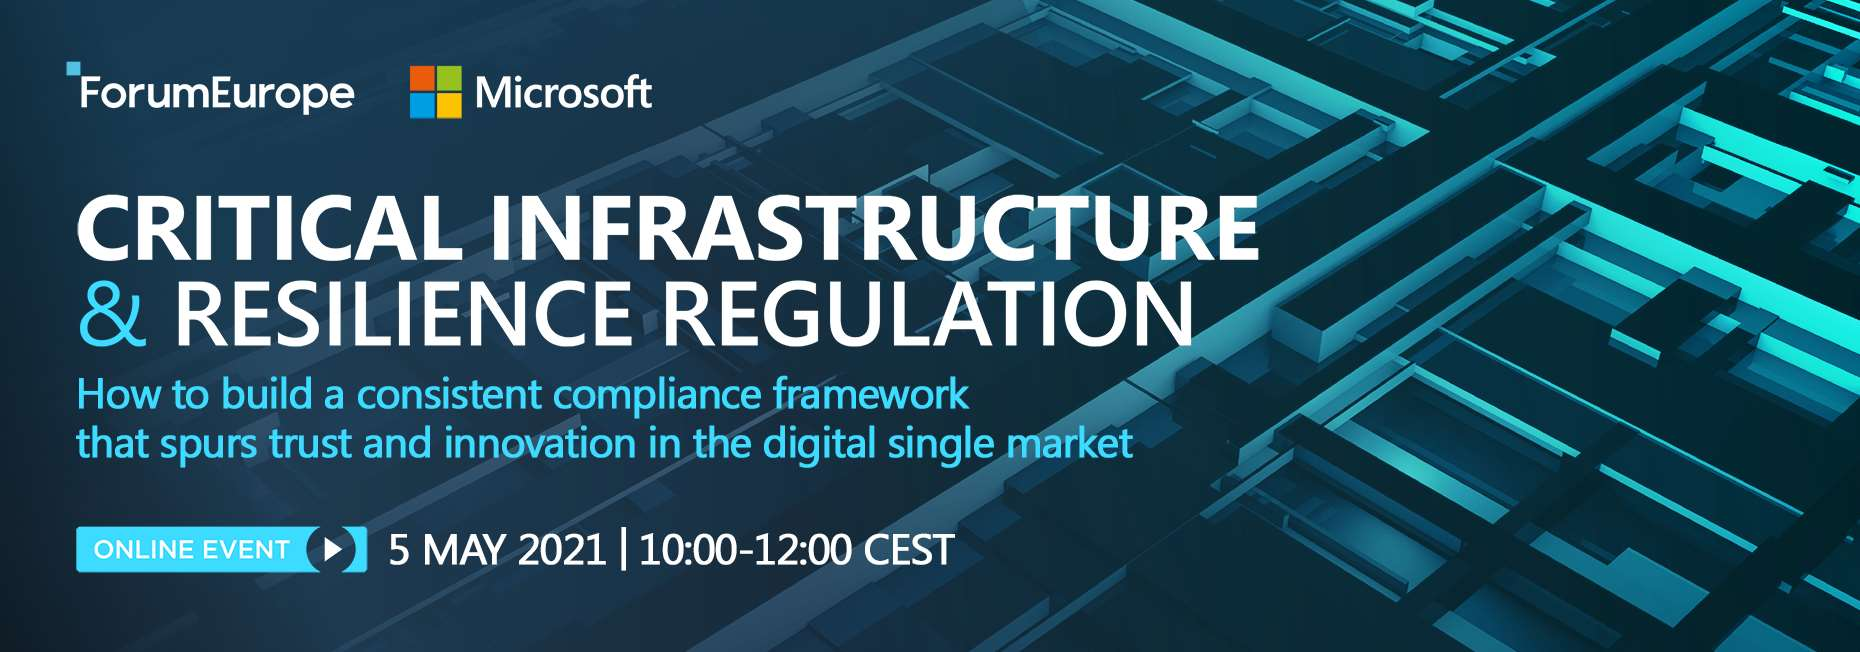 Critical infrastructure & resilience regulation: how to build a consistent compliance framework that spurs trust and innovation in the digital single market